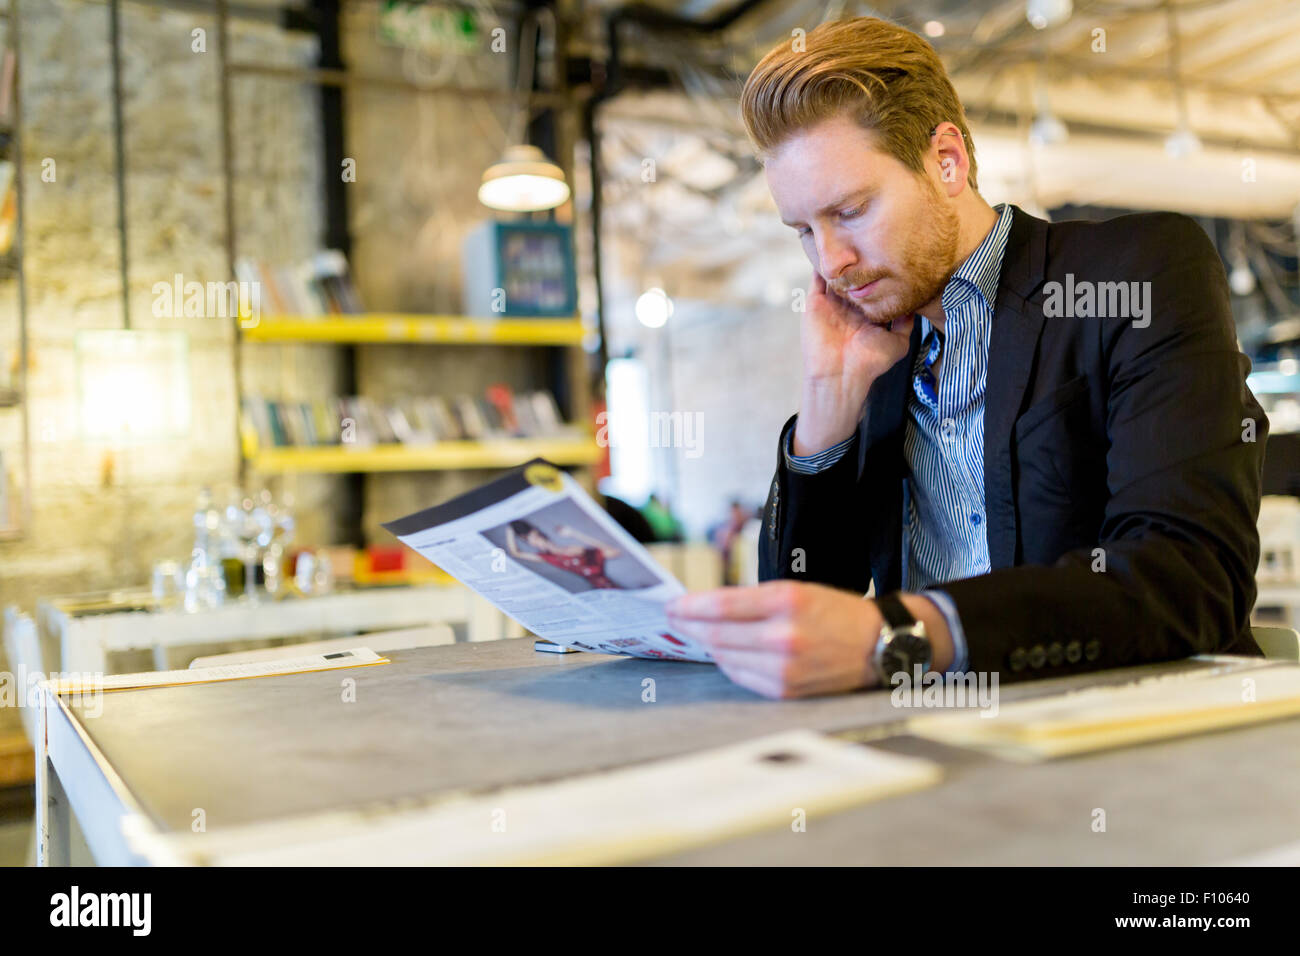 Confused businessman reading the paper in a restaurant - Stock Image